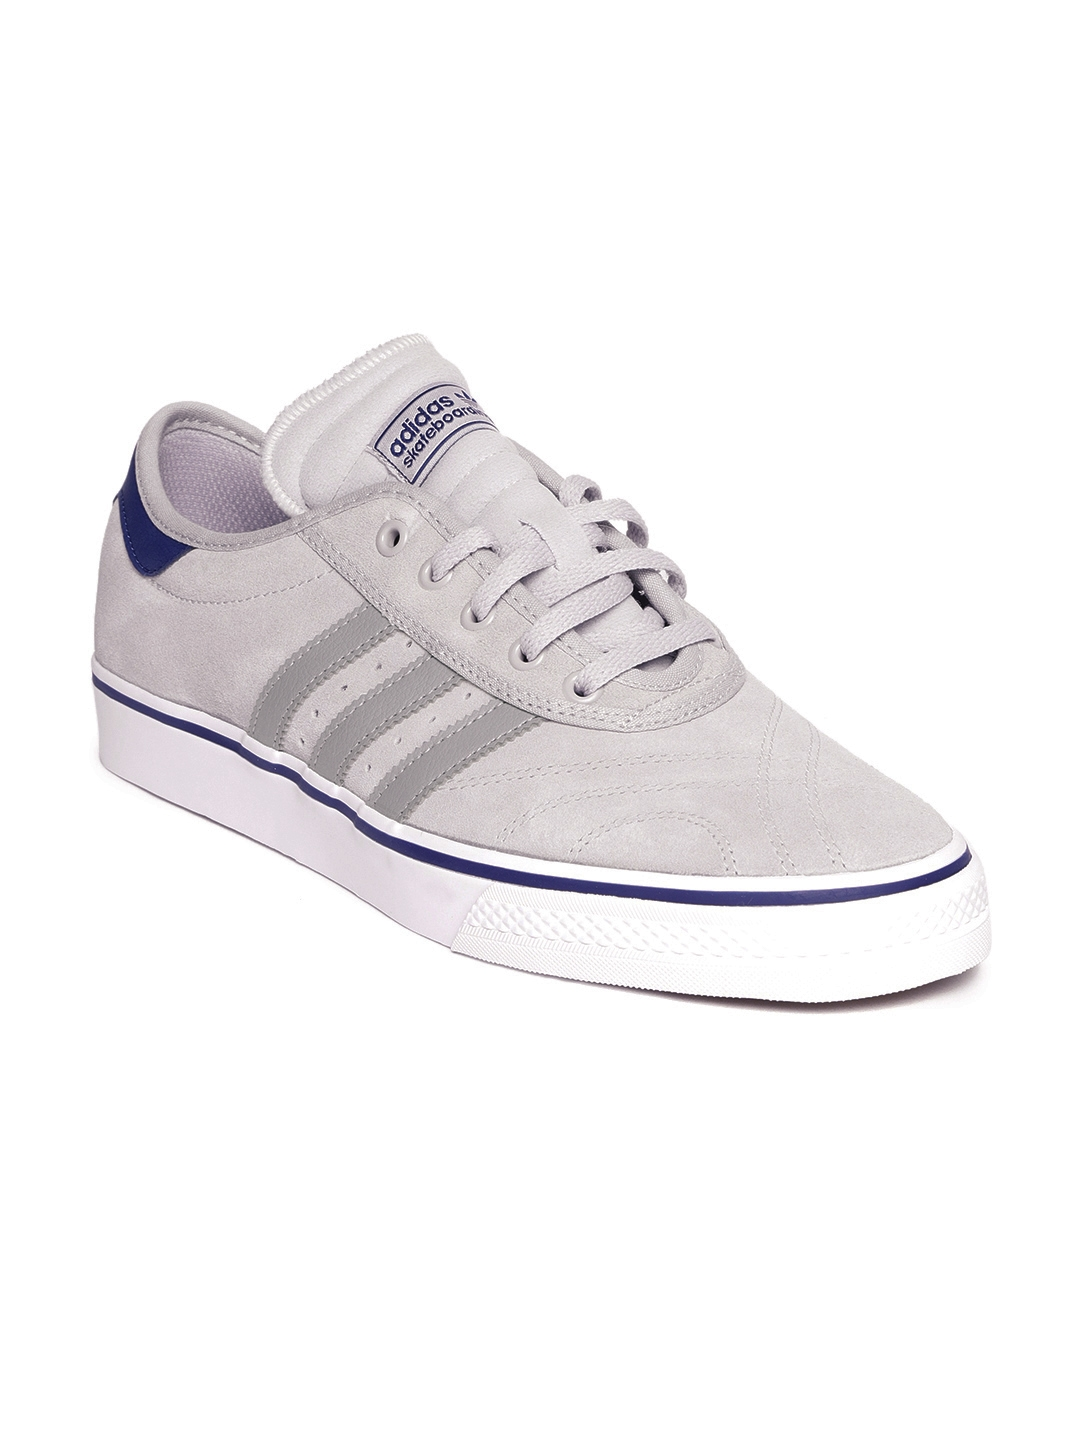 huge discount a7f6f 8731d Buy ADIDAS Originals Men Grey Adiease Premiere Suede Skateboarding Shoes -  Sports Shoes for Men 6842509   Myntra